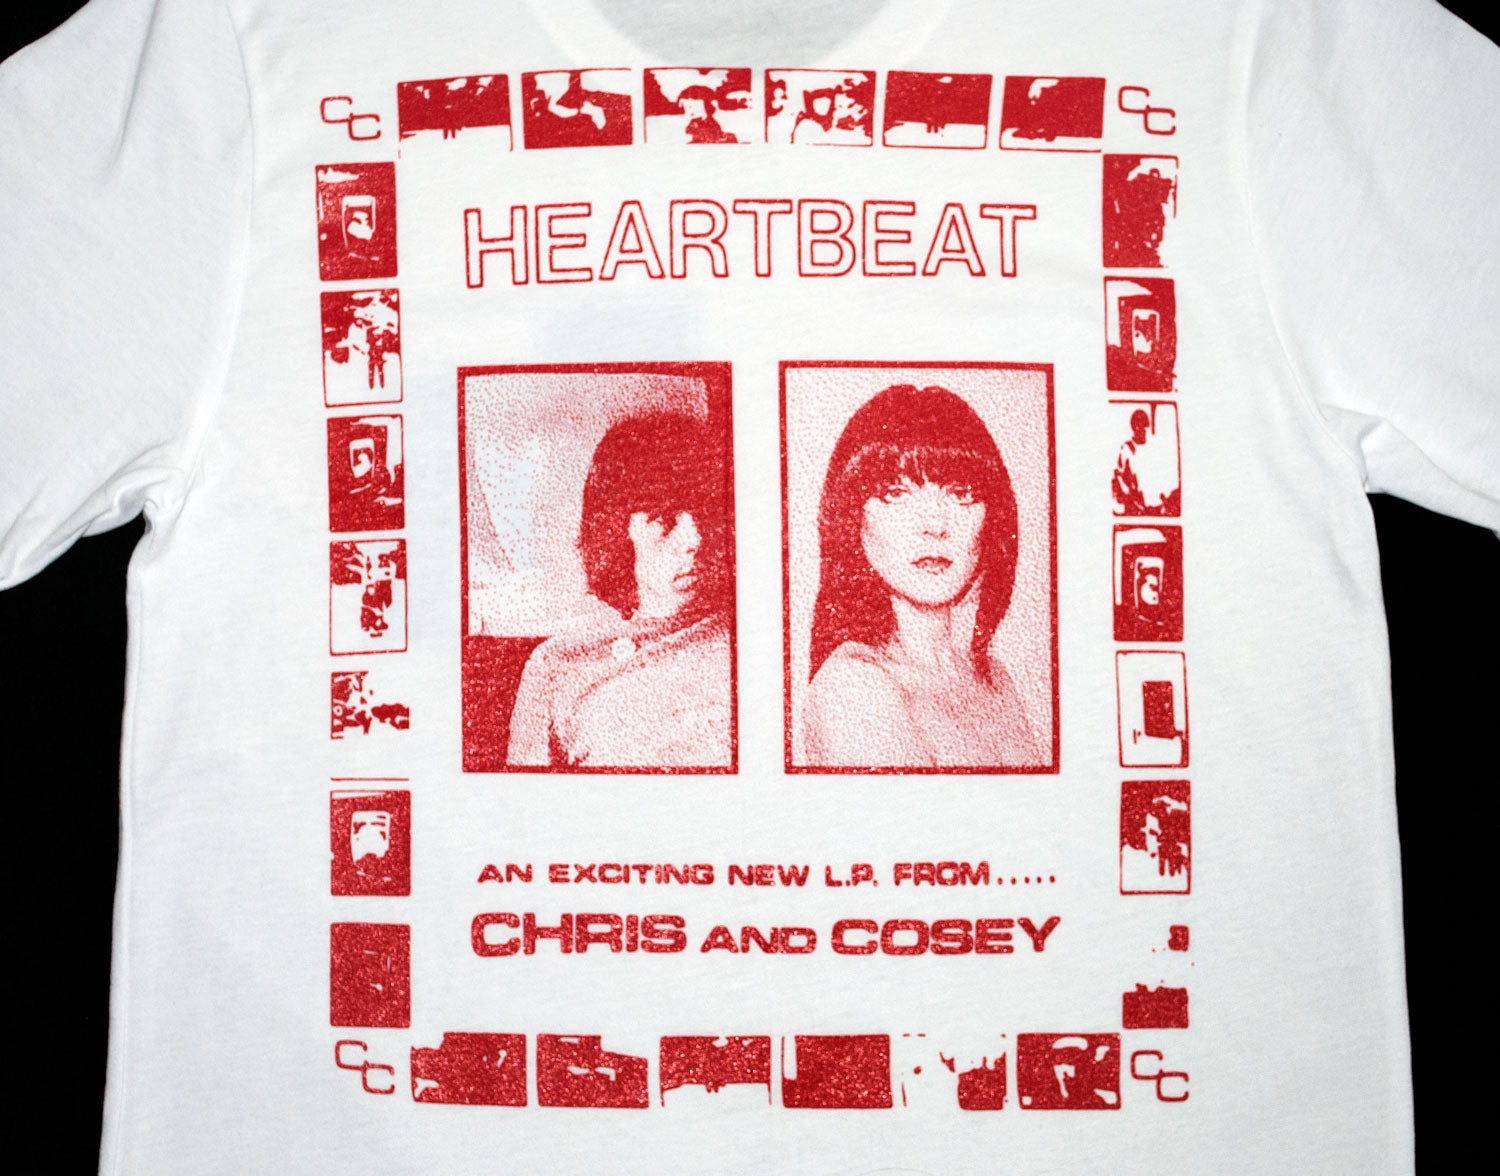 Chris and Cosey